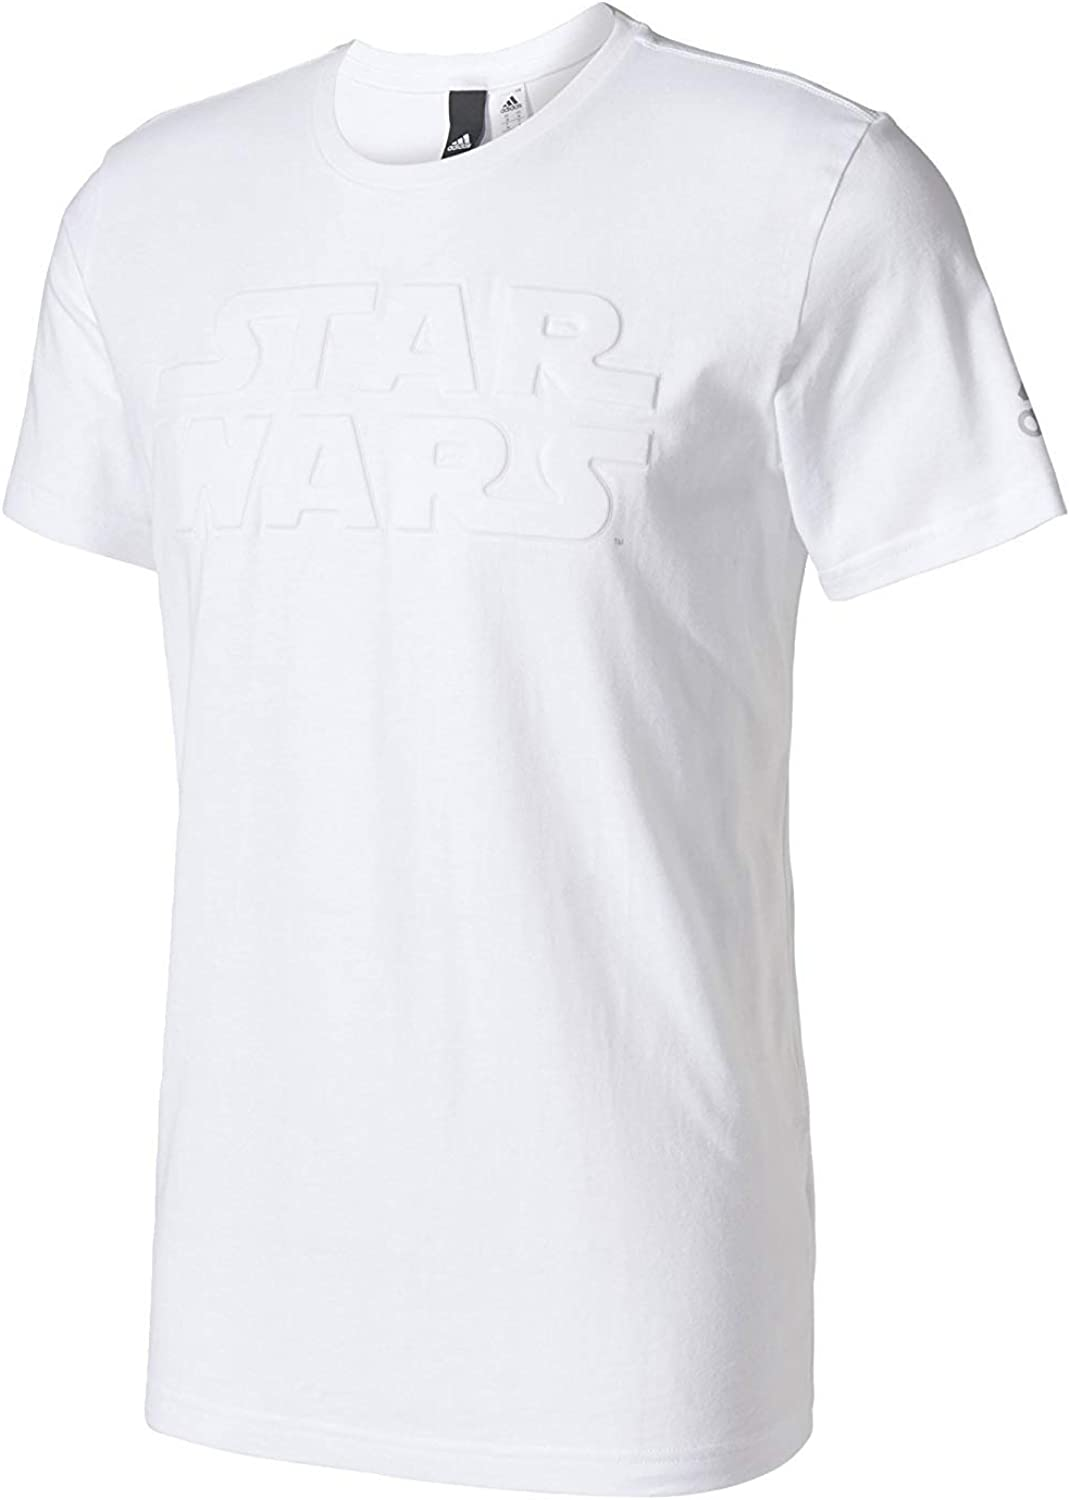 adidas t shirt star wars